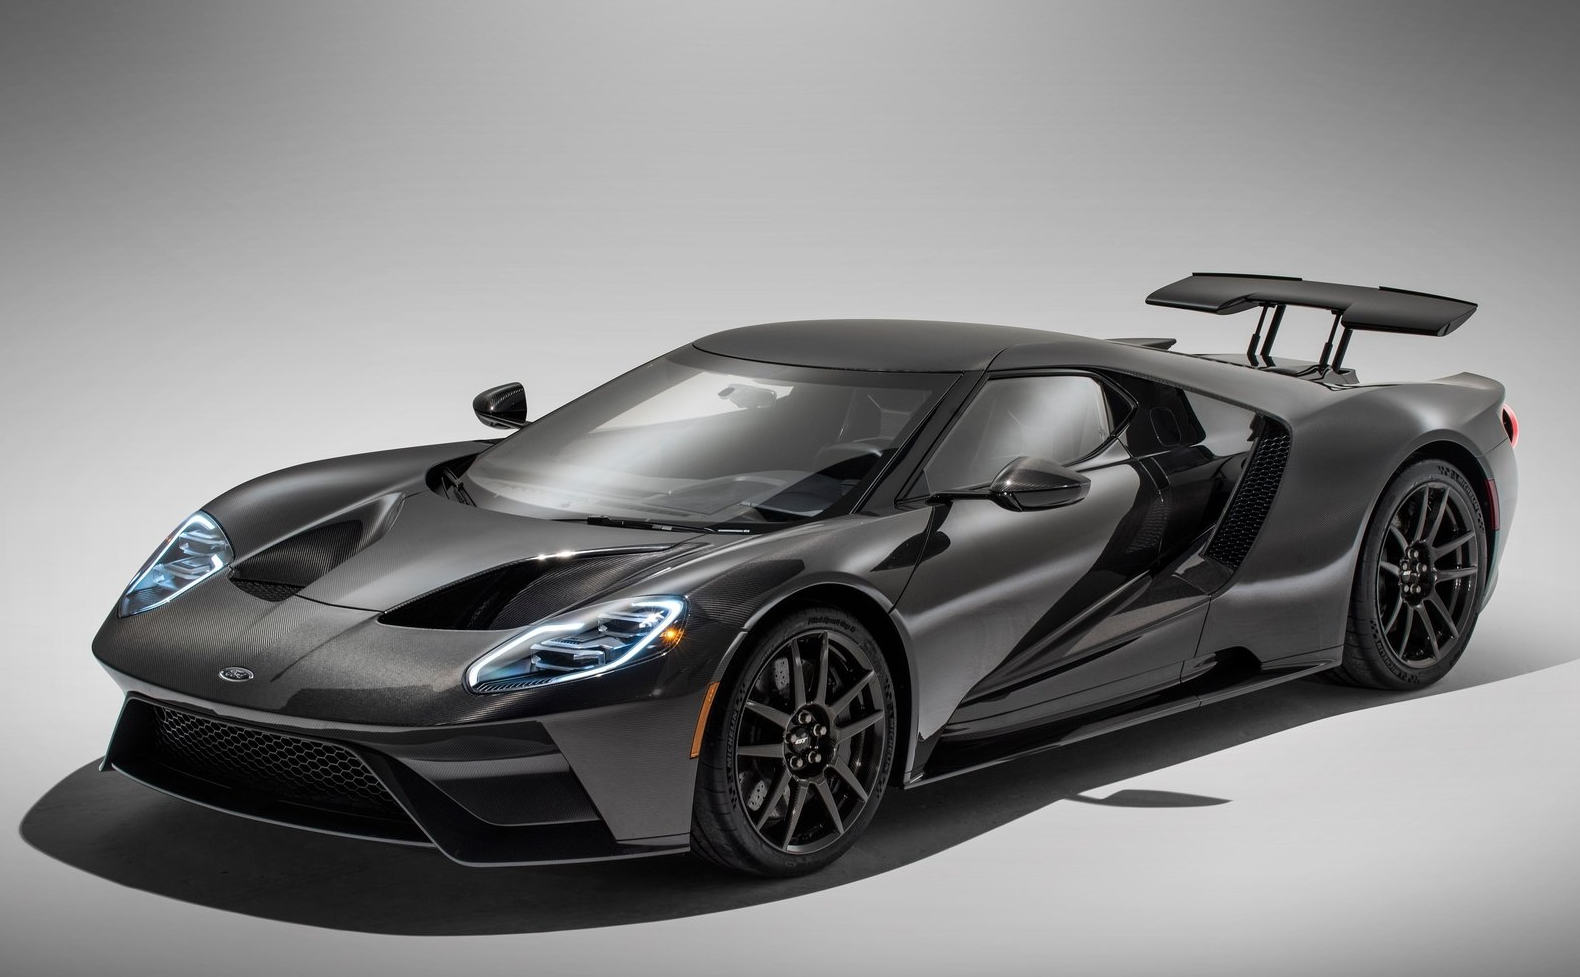 Ford Gt 2020 In 2020 Ford Gt Super Cars Ford